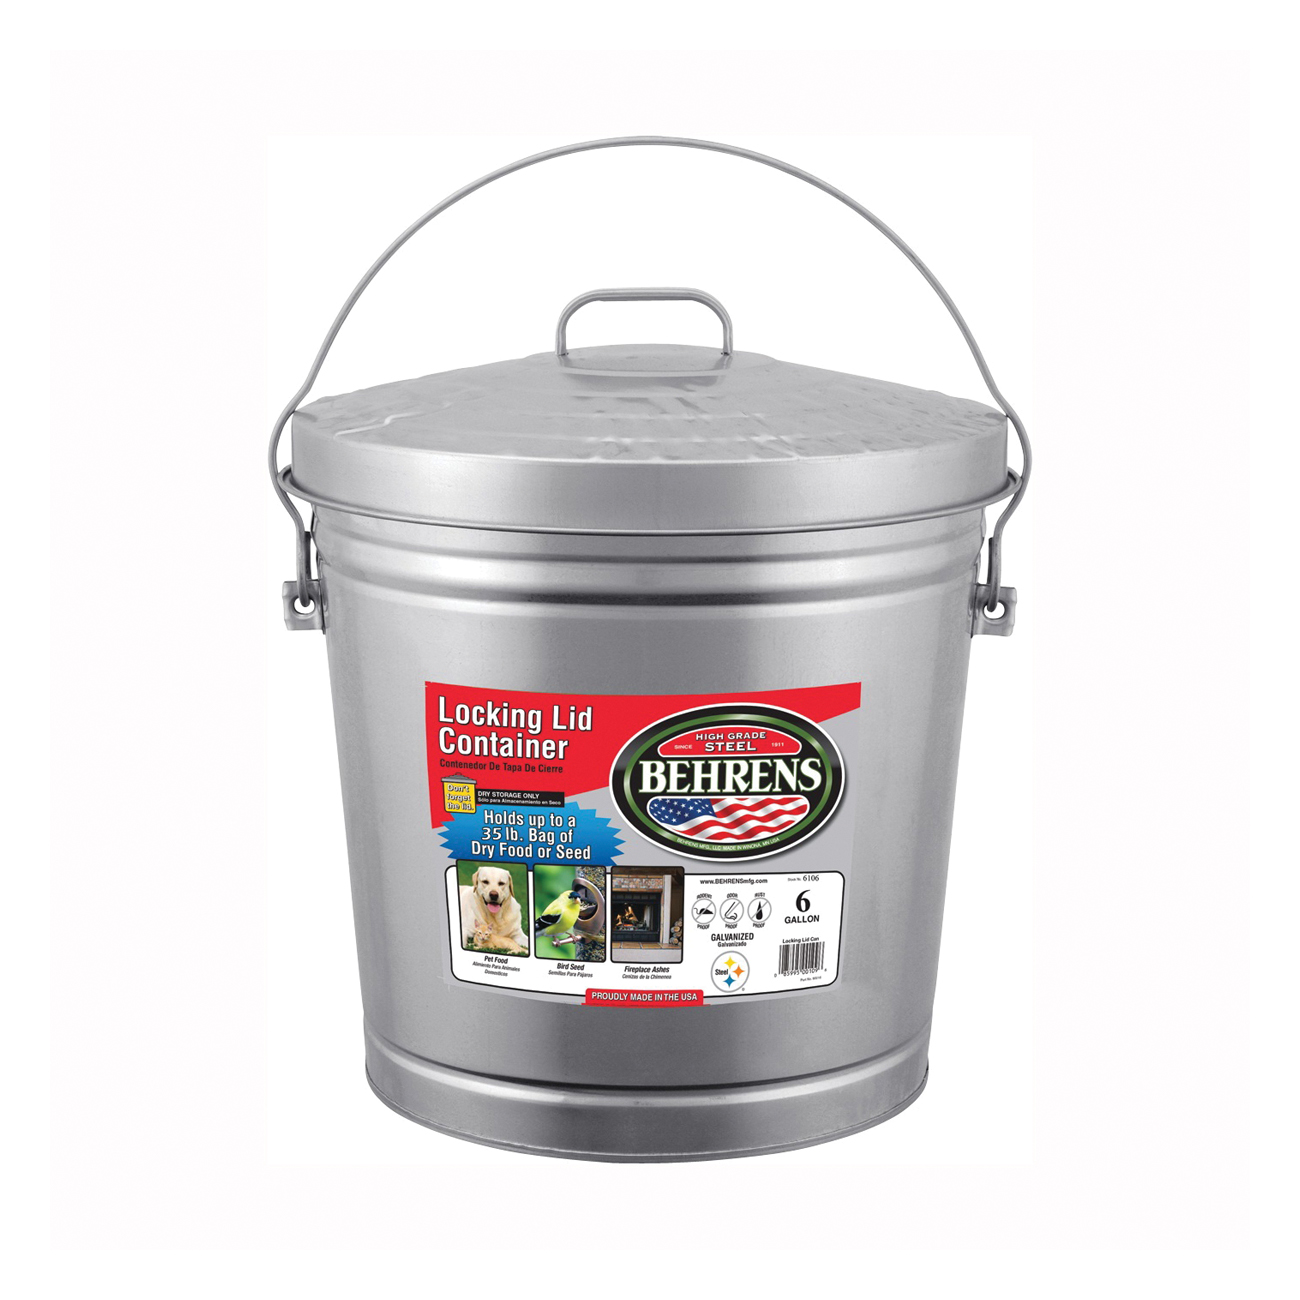 Picture of Behrens 6106 KIT Locking Lid Can, 6 gal Capacity, Galvanized Steel, Silver